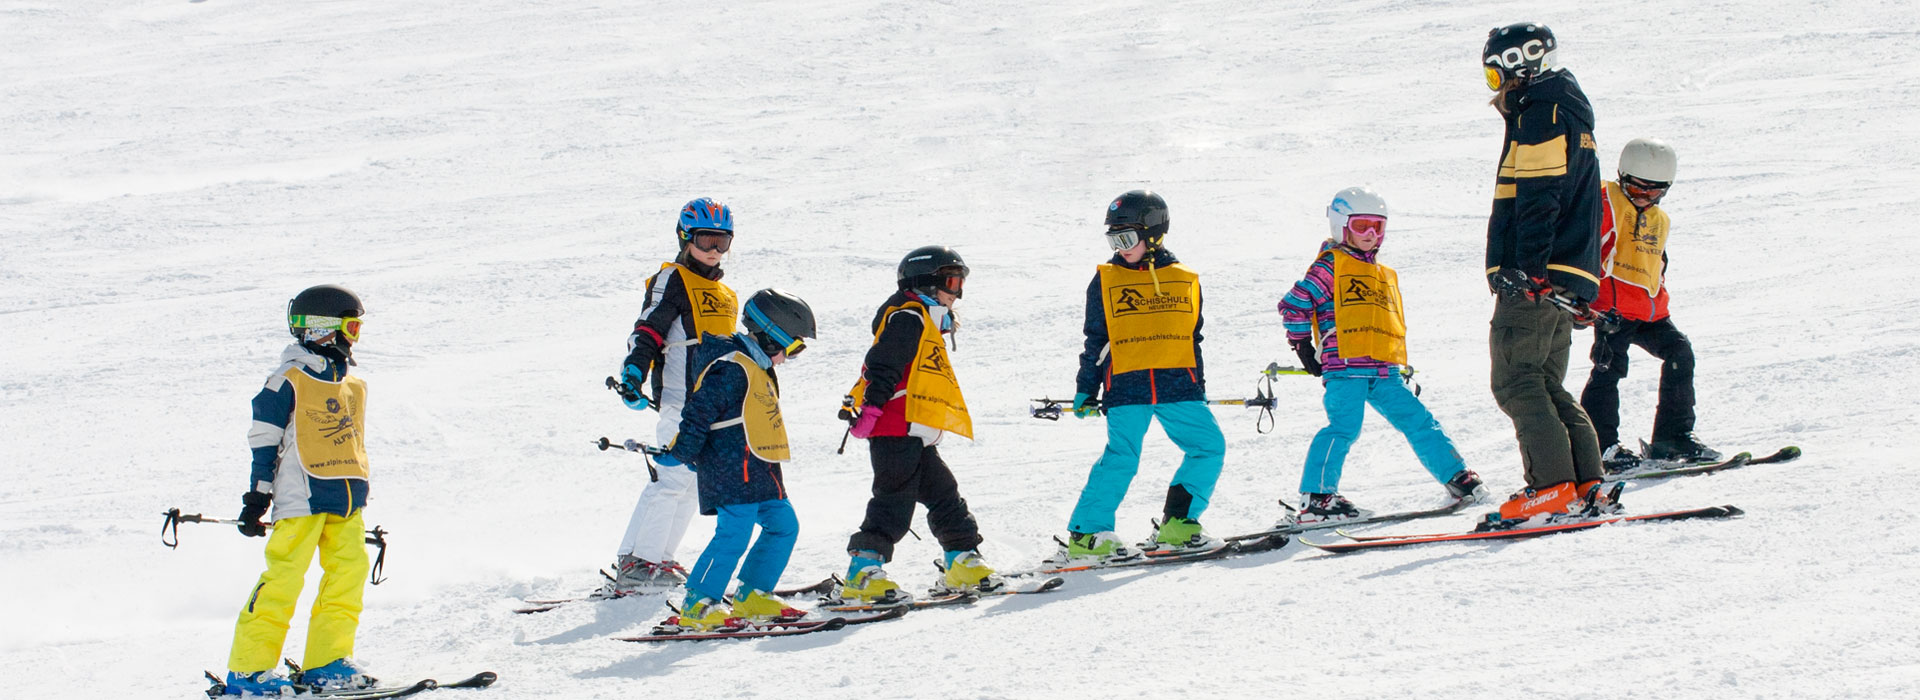 ALPIN SKI SCHOOL NEUSTIFT - ski courses for children